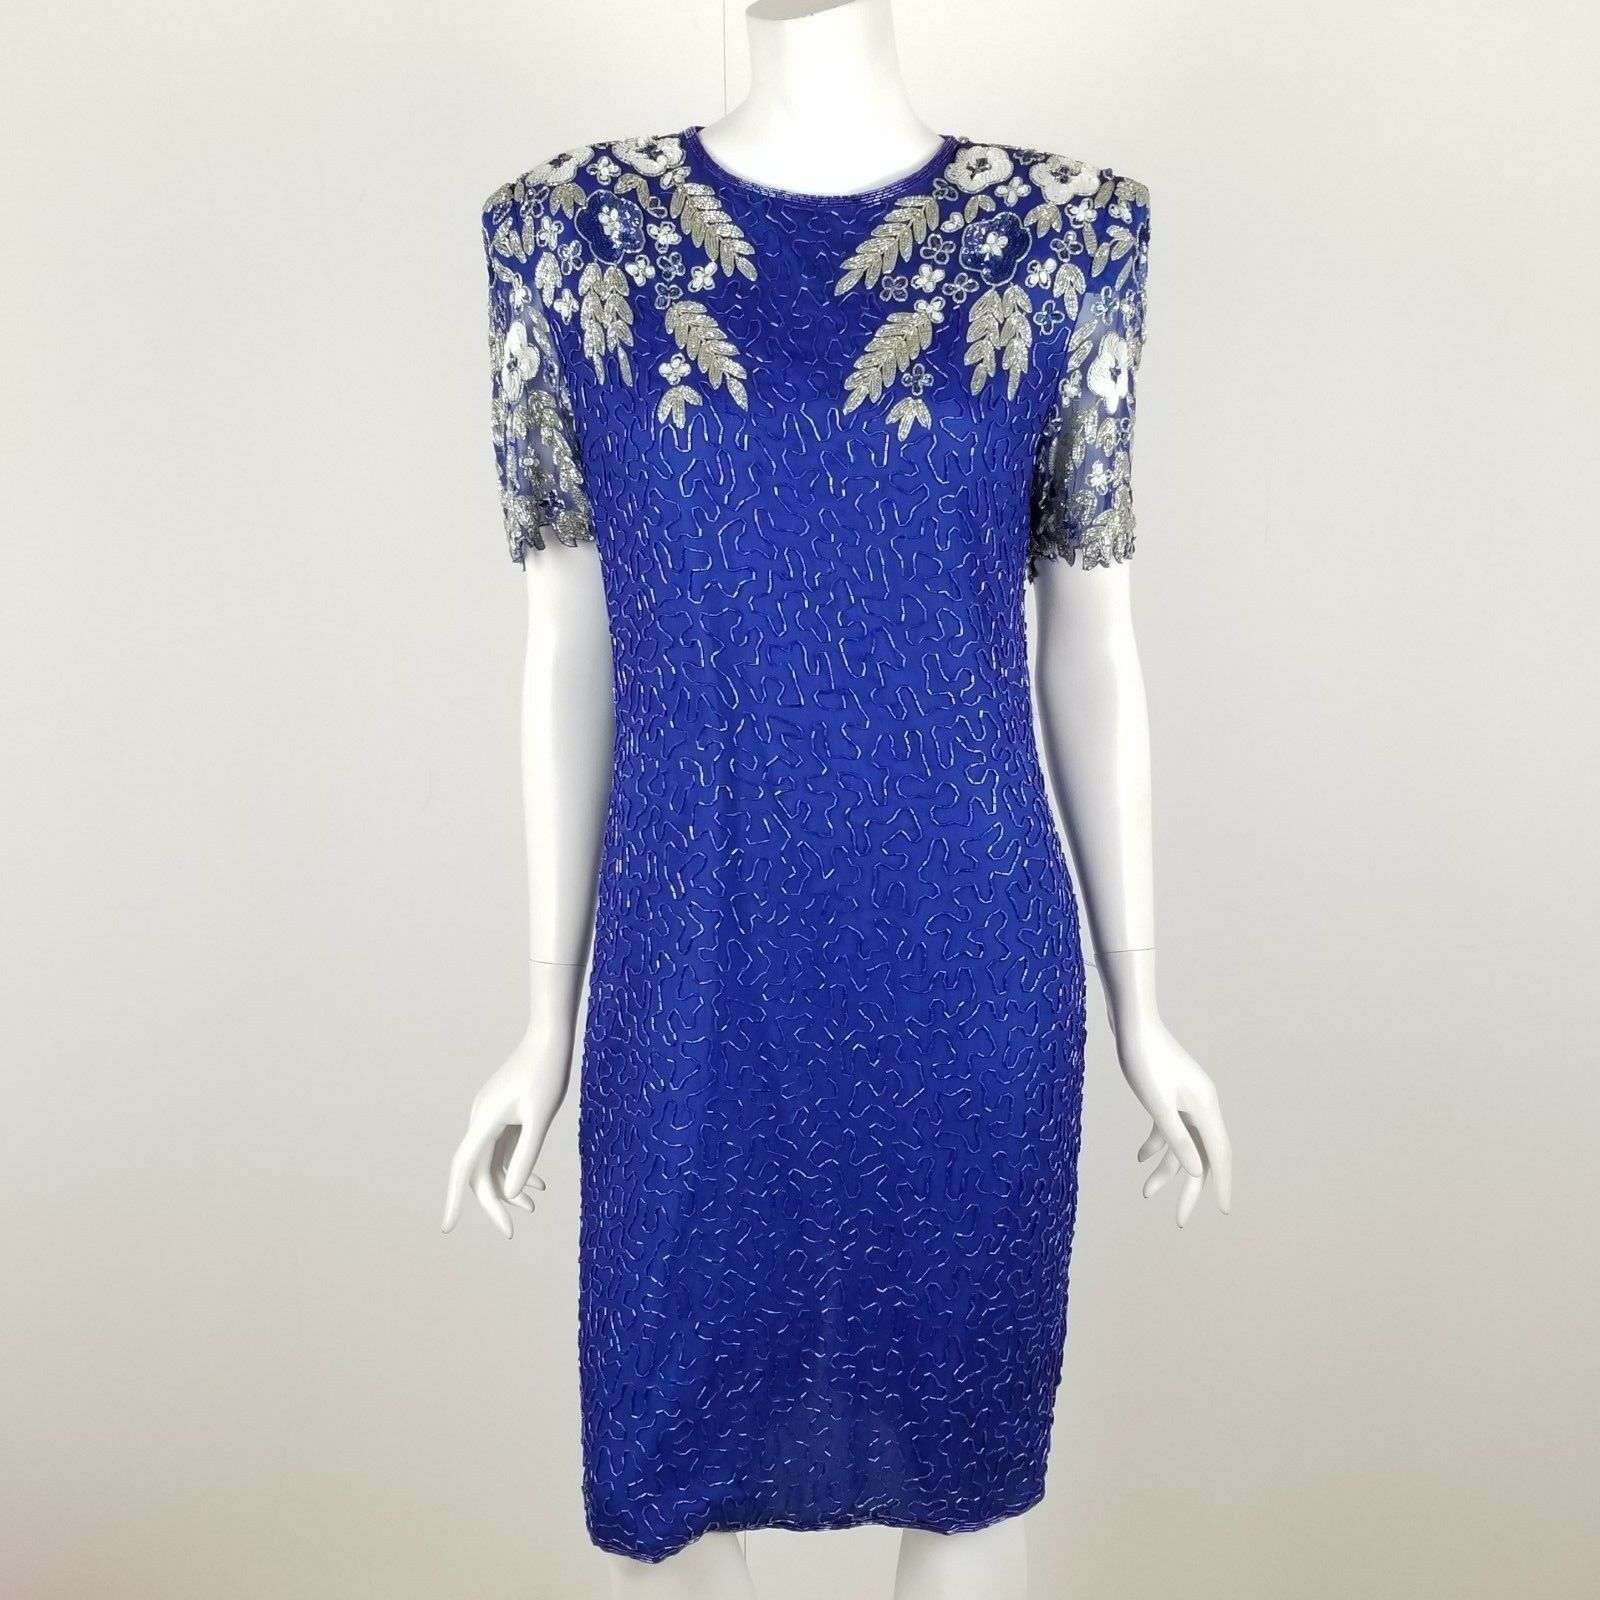 Laurence Kazar Cocktail Dress Größe Medium Blau Sequin Beaded Open Back